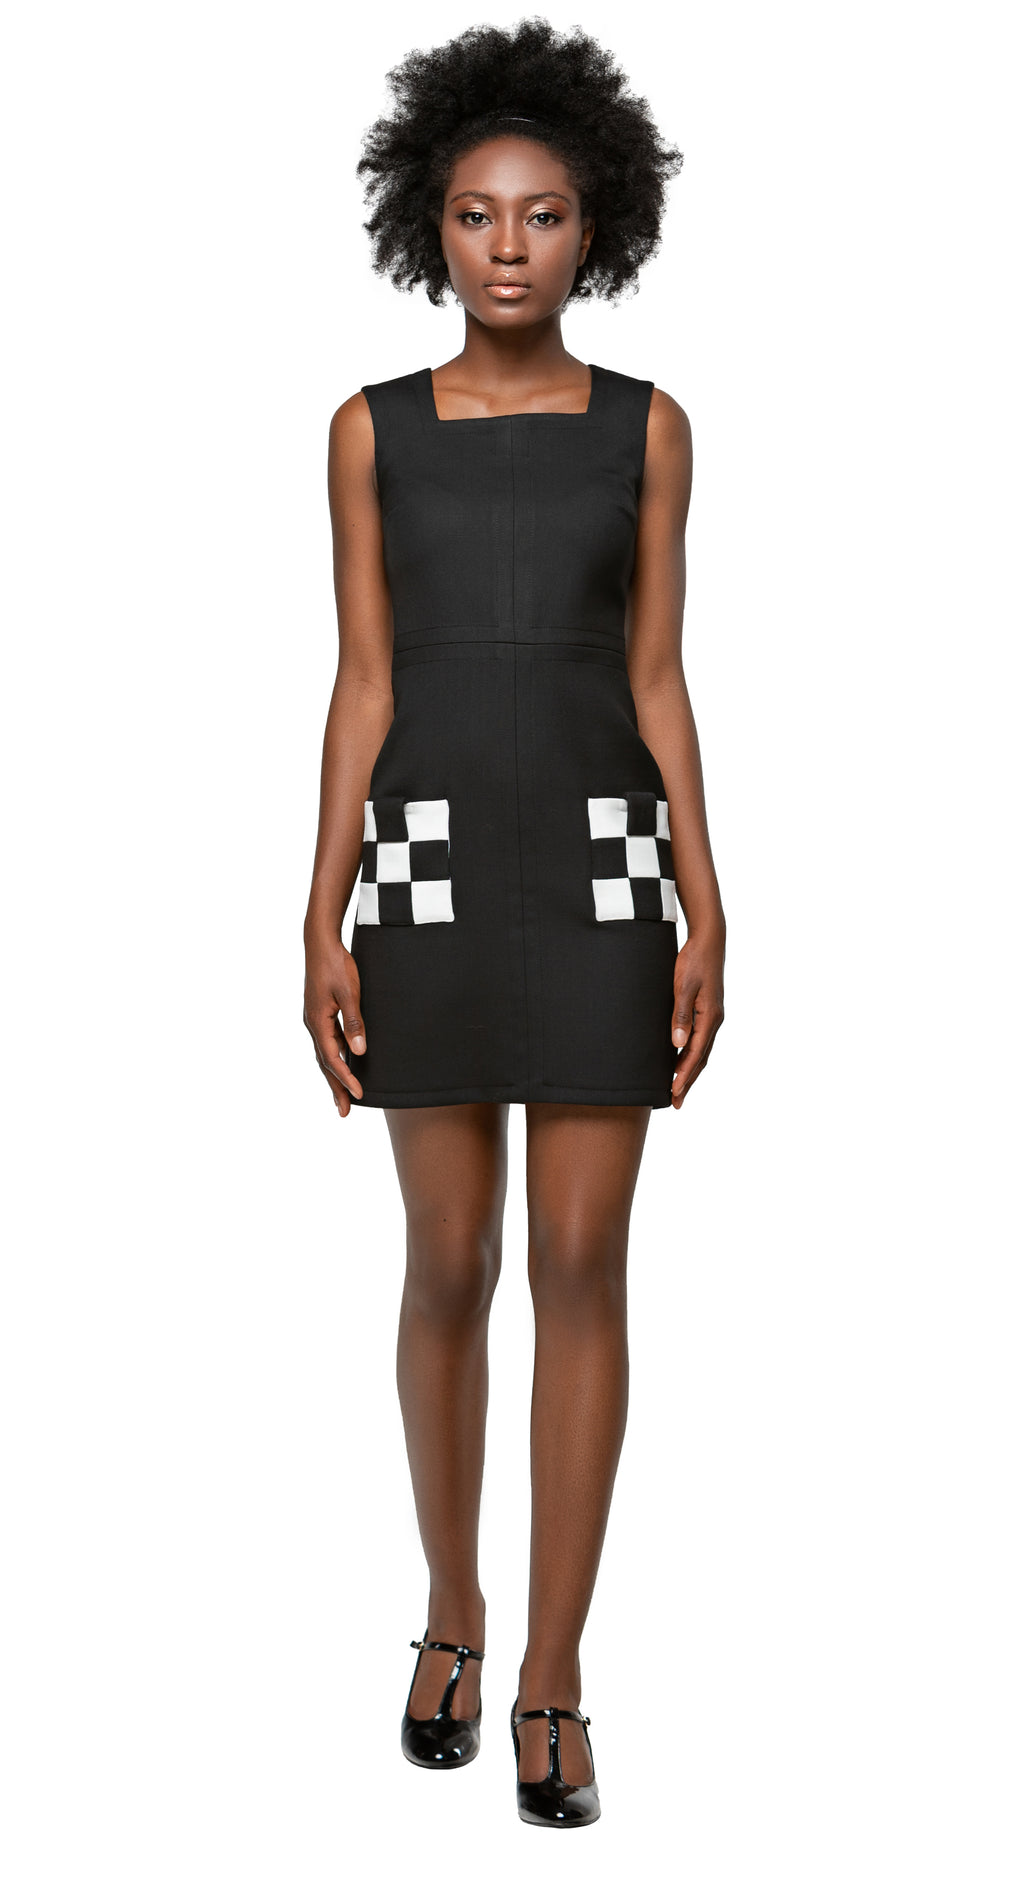 MARMALADE 60s Ska Style Dress with Checkered Pockets